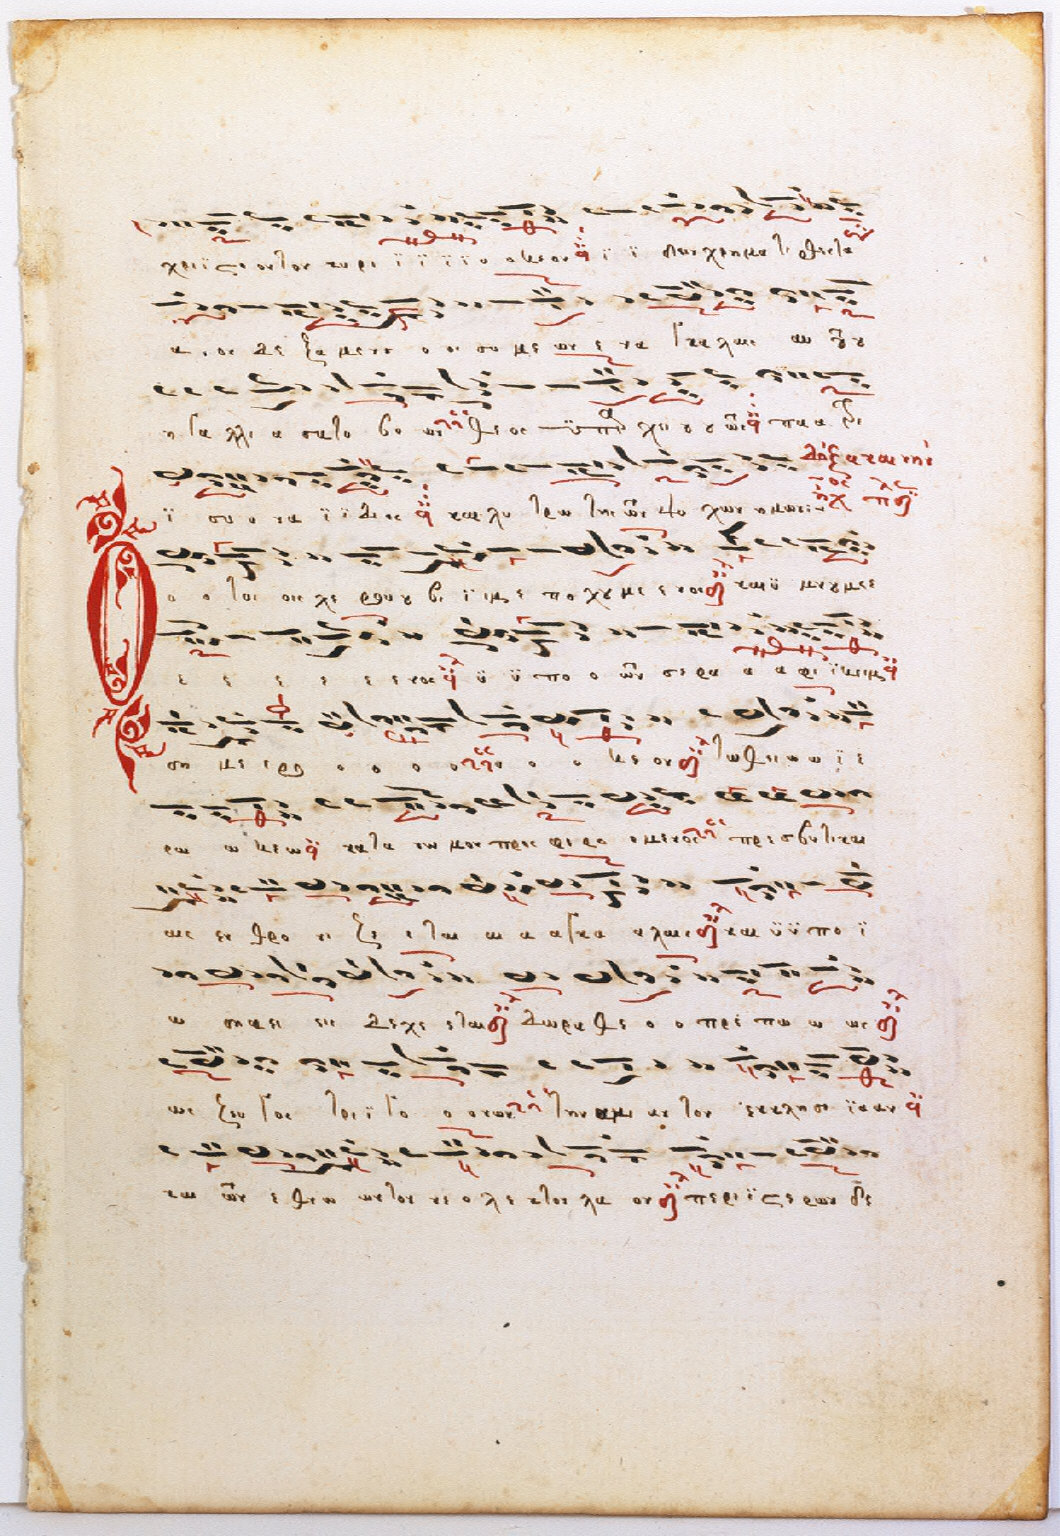 Liturgical Leaf with Eastern Music Notations